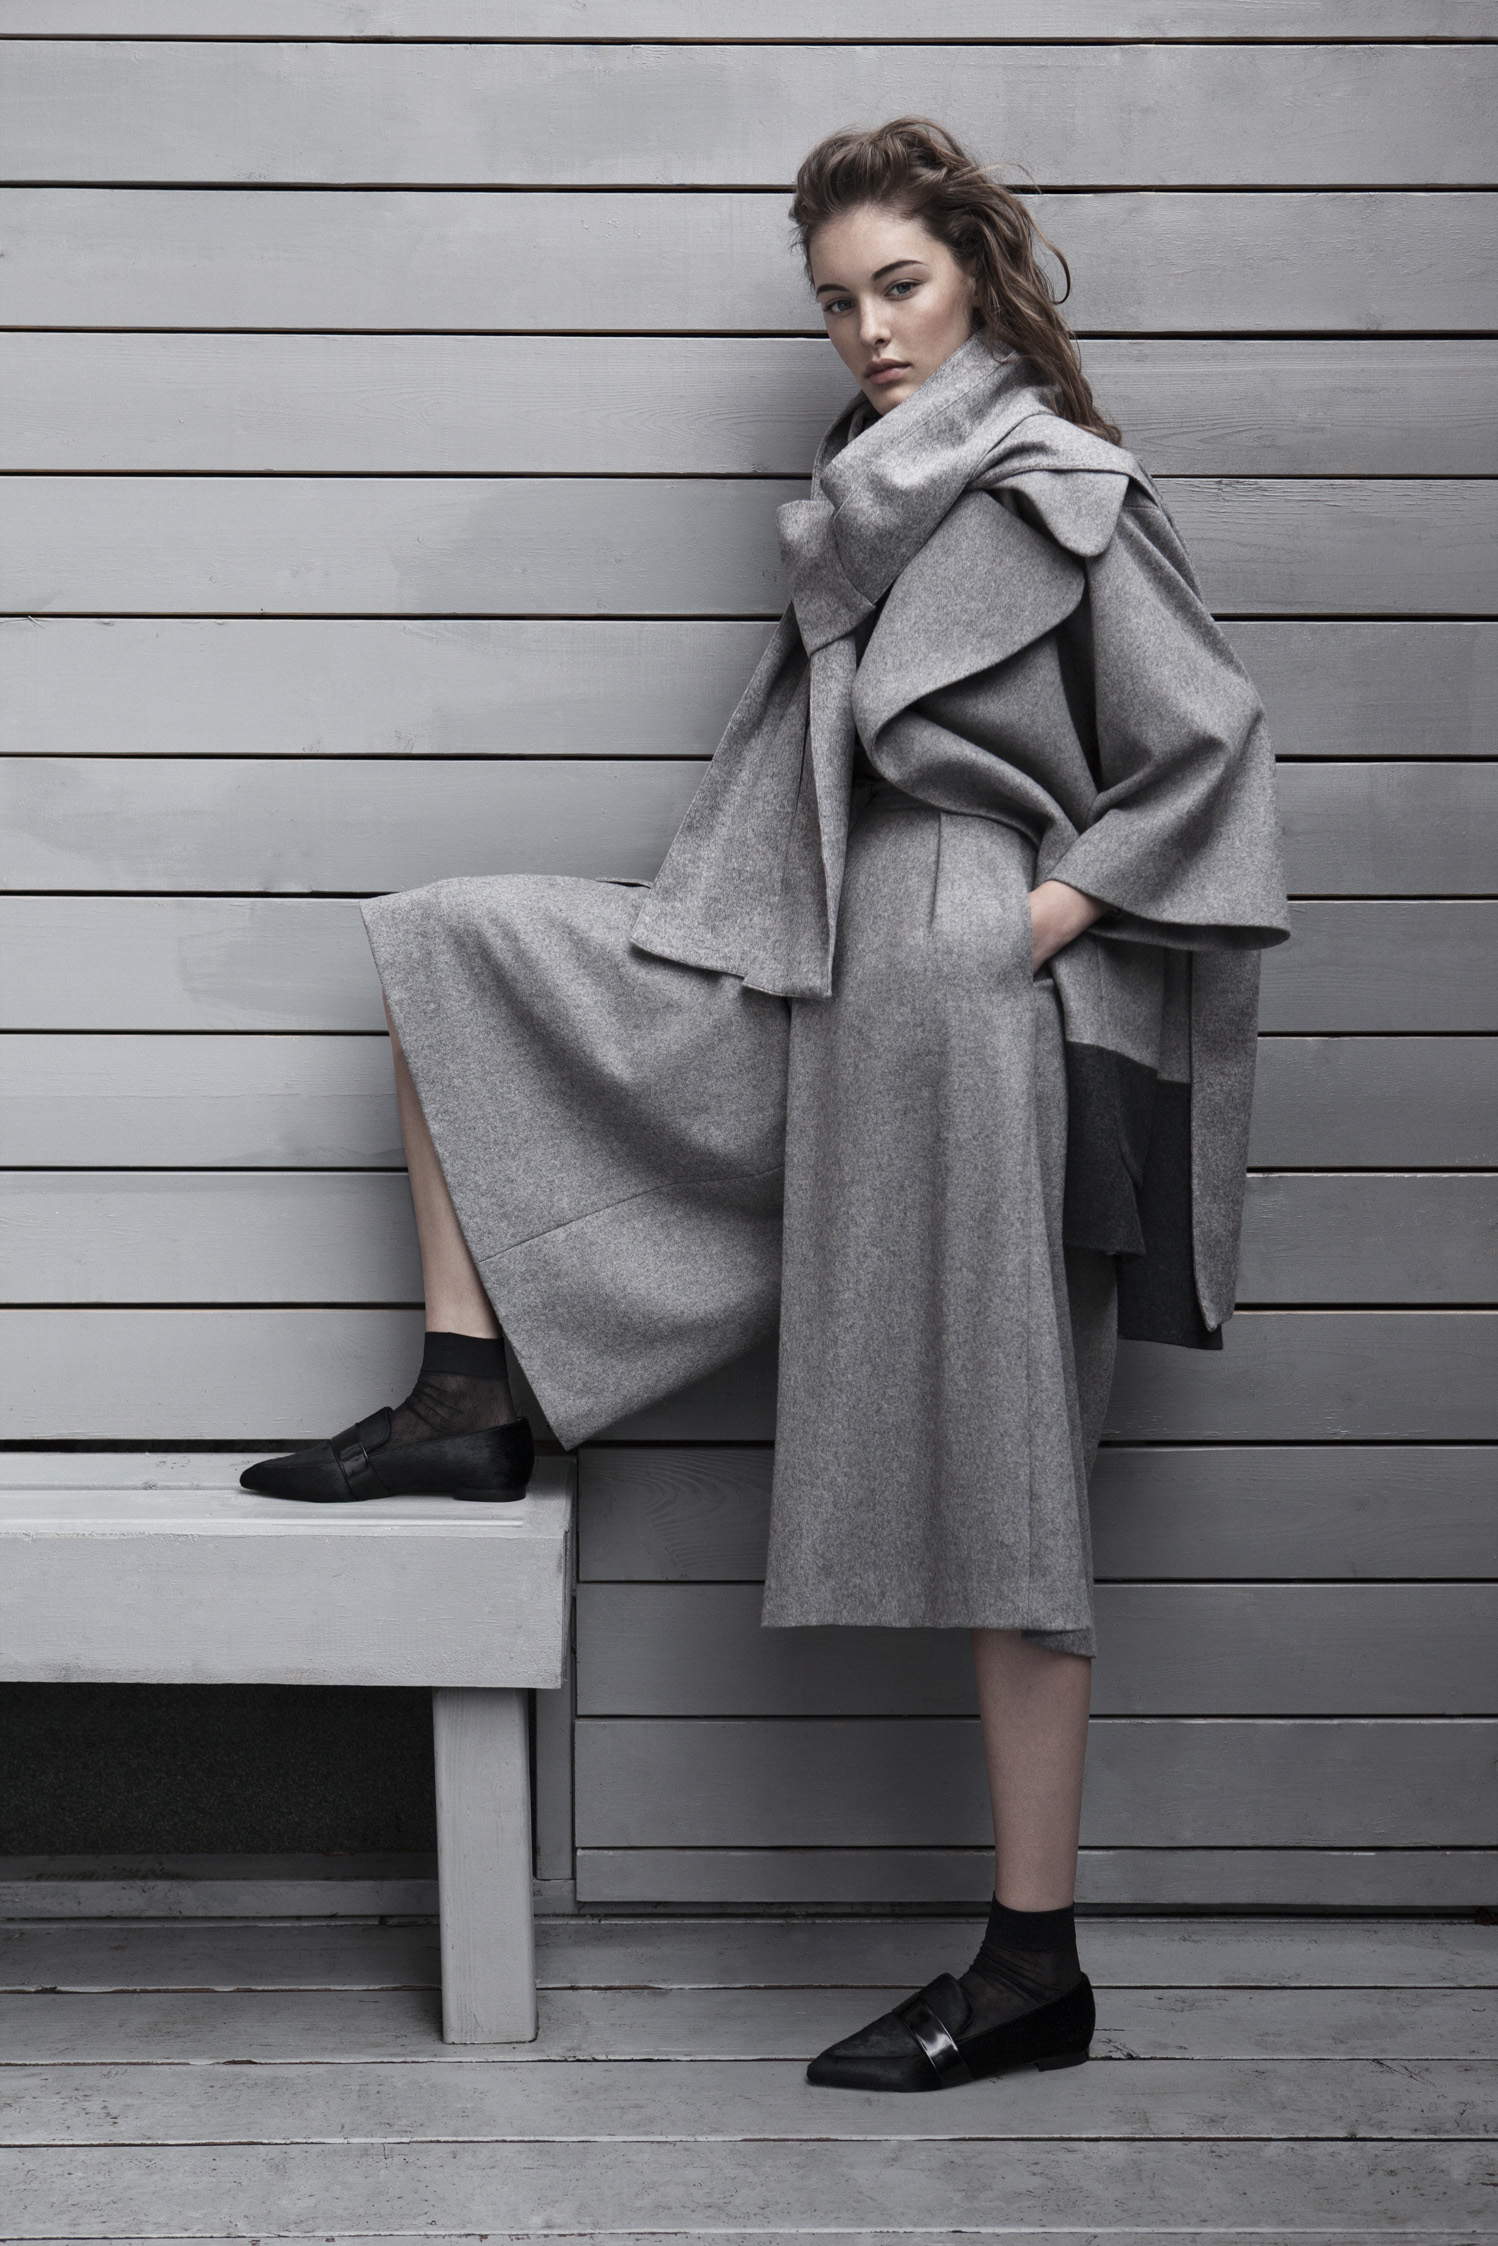 - Grey Capsule....Capsule #1 brings together ten refined pieces in shades of grey that are effortless, relaxed and easy to mix and match. Chic with notes of modern femininity, these neutral hues are versatile and offer endless possibilities in a women's wardrobe. In this collection, sumptuous textures in an assemblage of greys are tailored with meticulous craftsmanship to bring forth studied, contemporary silhouettes of enduring appeal...    Normal 0   21   false false false  EN-US JA X-NONE                                                                                                                                                                                         /* Style Definitions */ table.MsoNormalTable {mso-style-name: